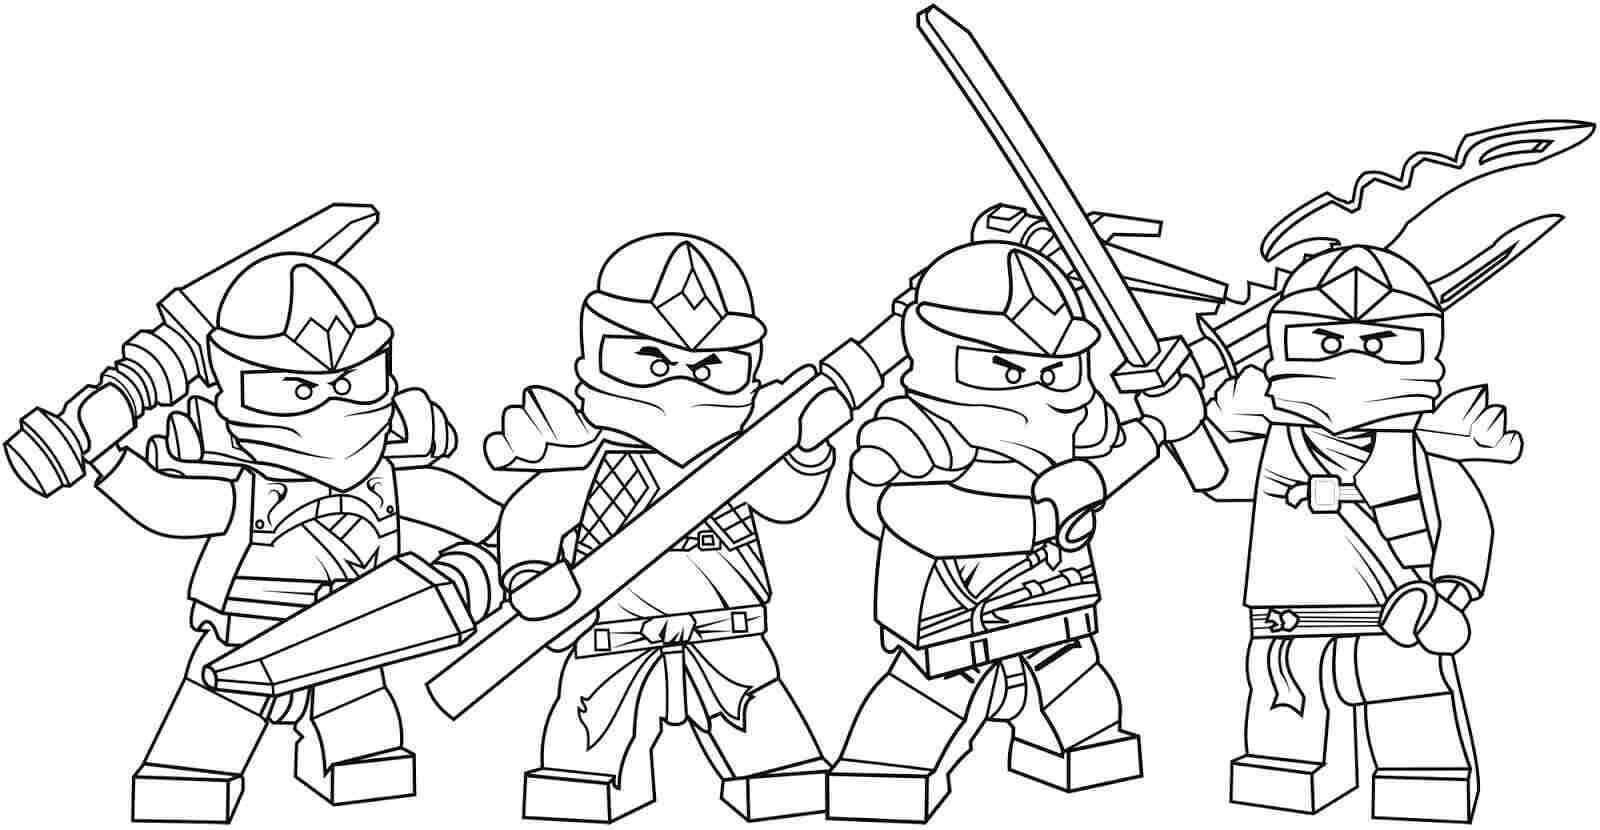 30 free printable lego ninjago coloring pages for Coloring pages of ninjas